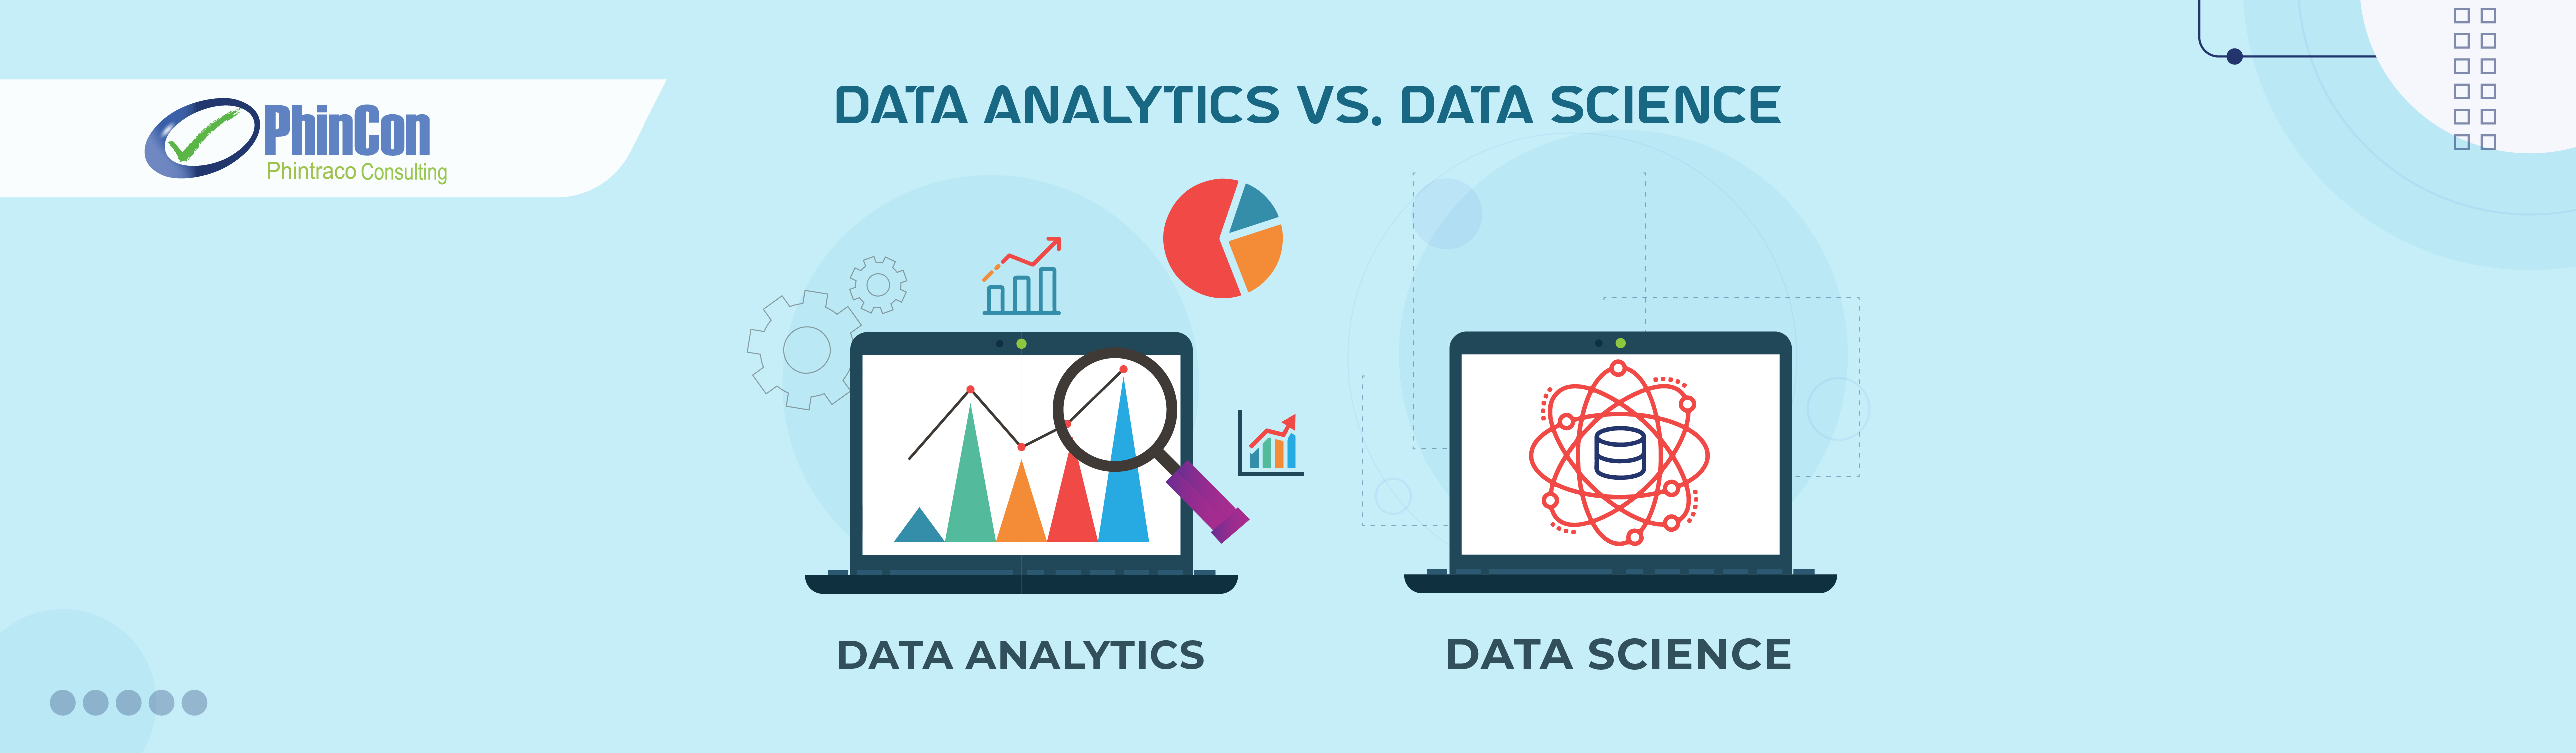 Data Analytics and Data Science: What are the Differences?